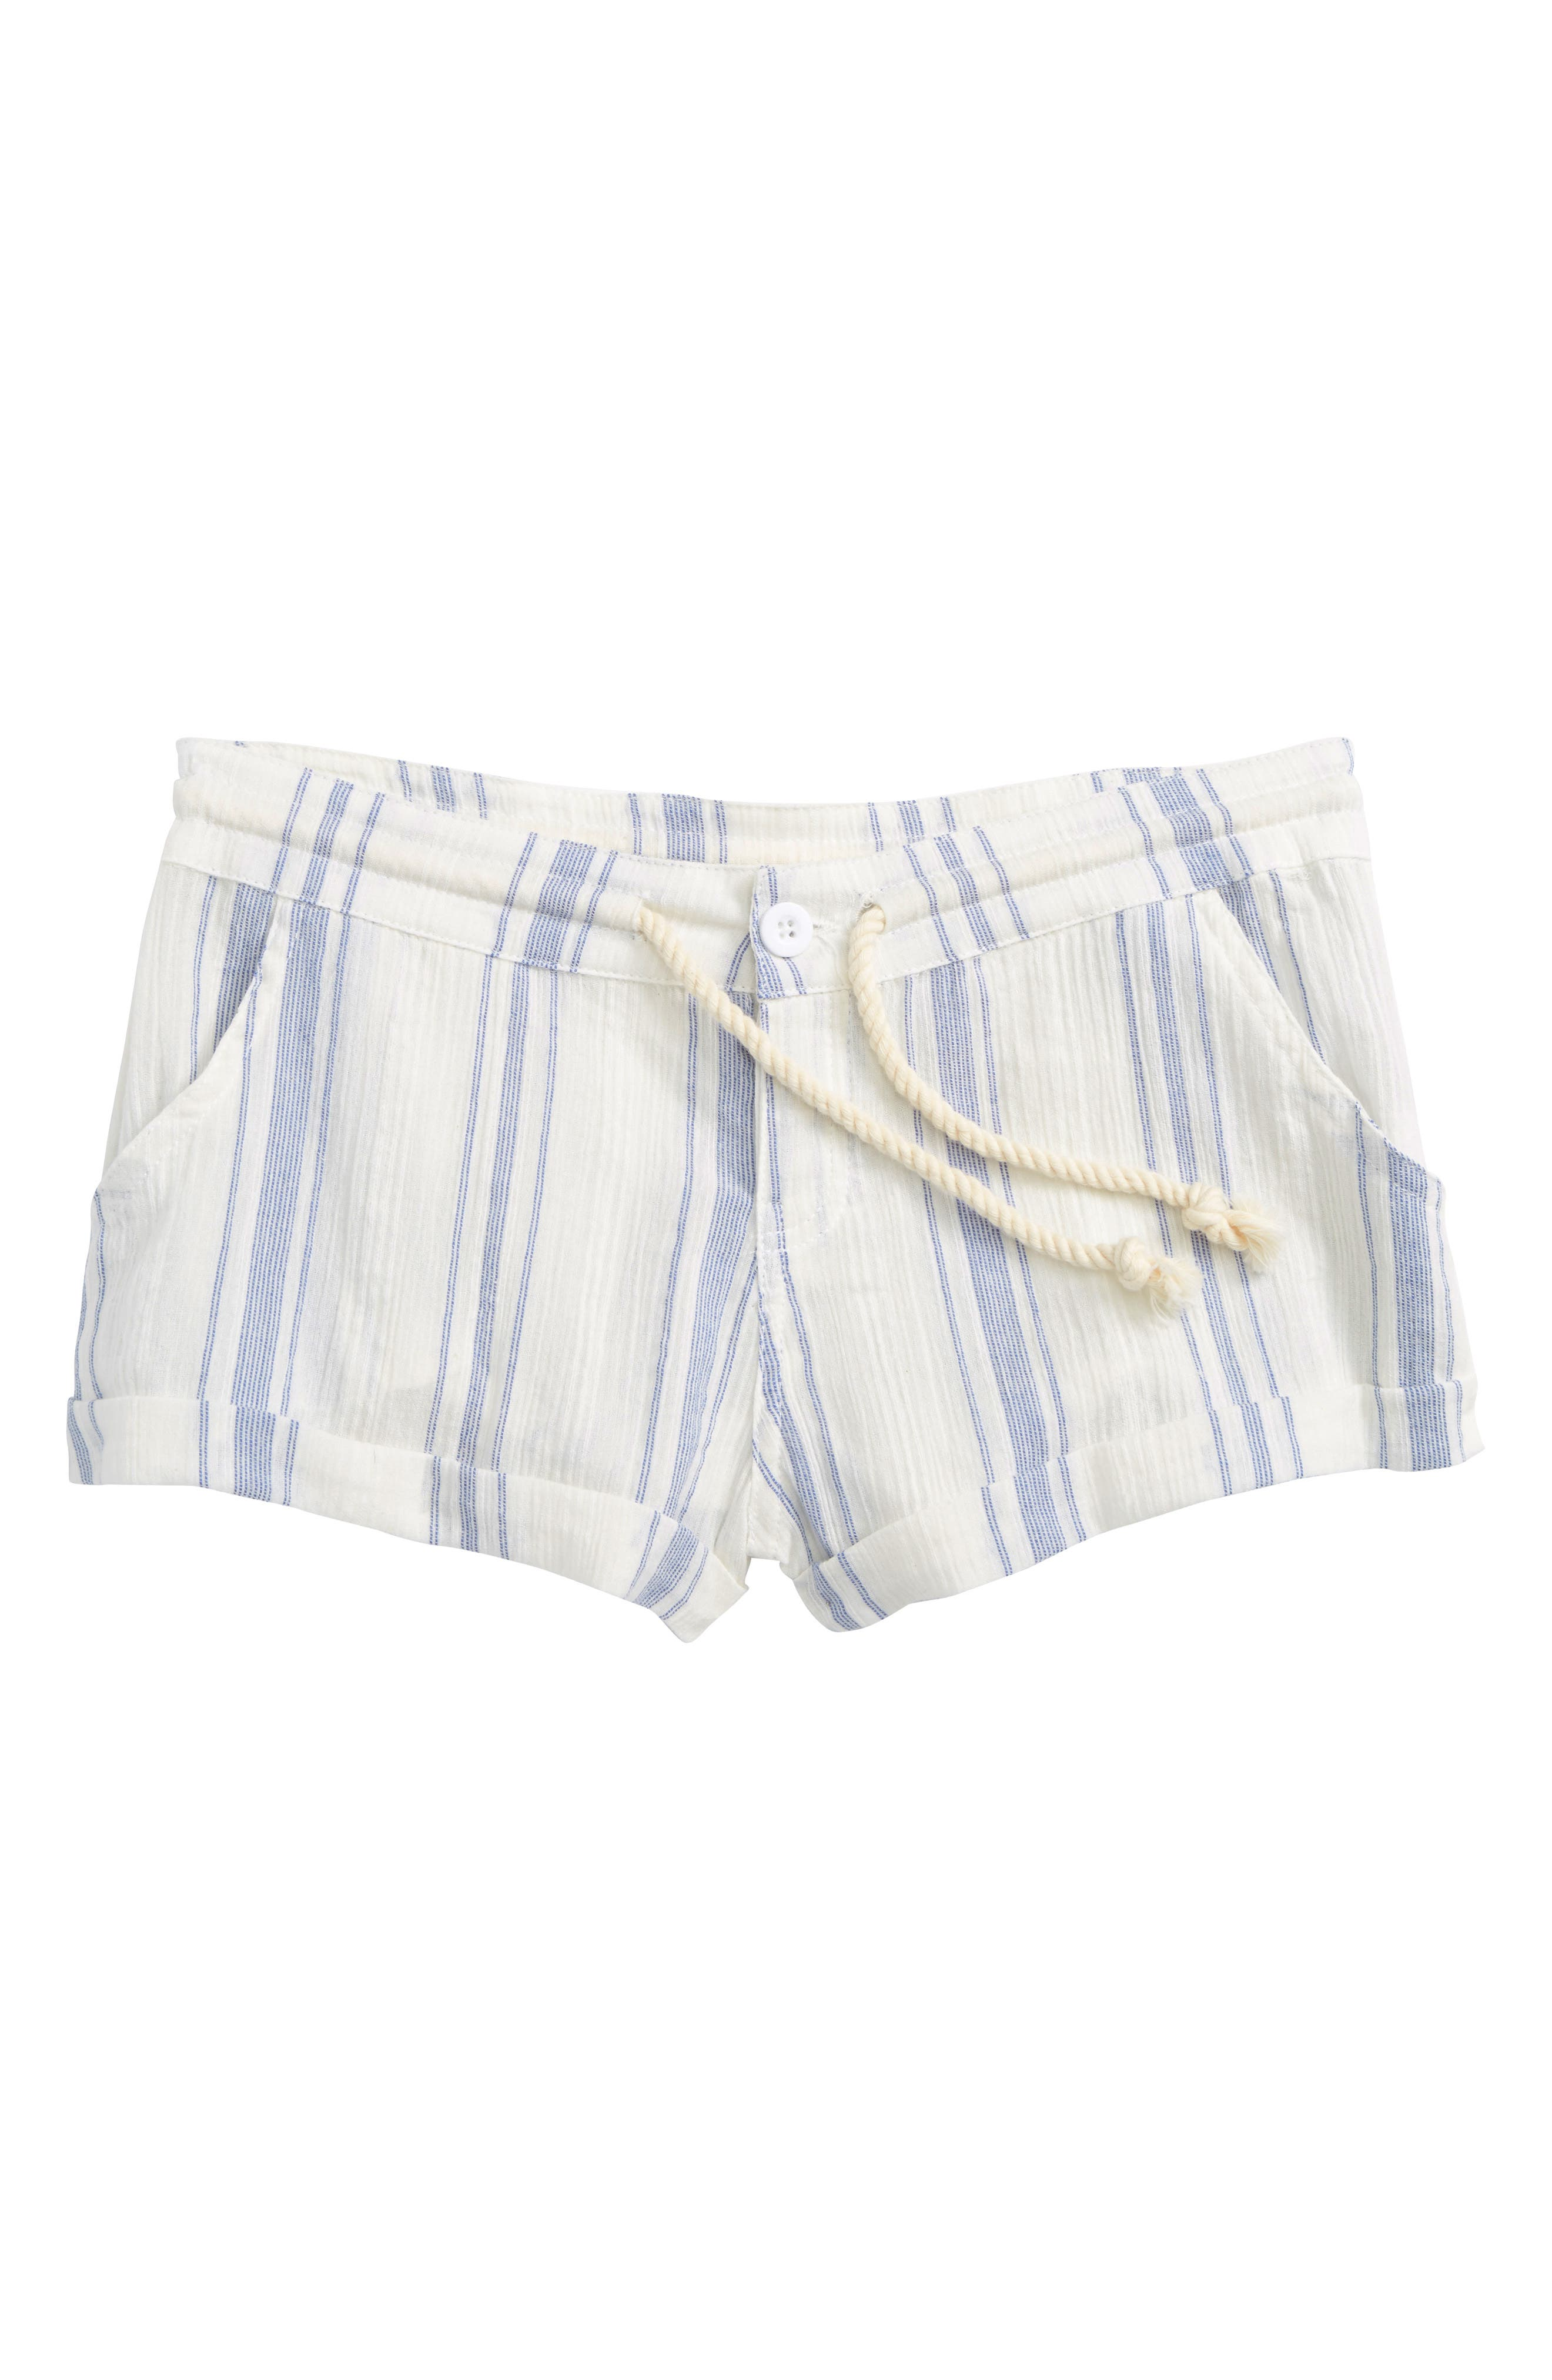 Krissy Stripe Cotton Shorts,                             Main thumbnail 1, color,                             White